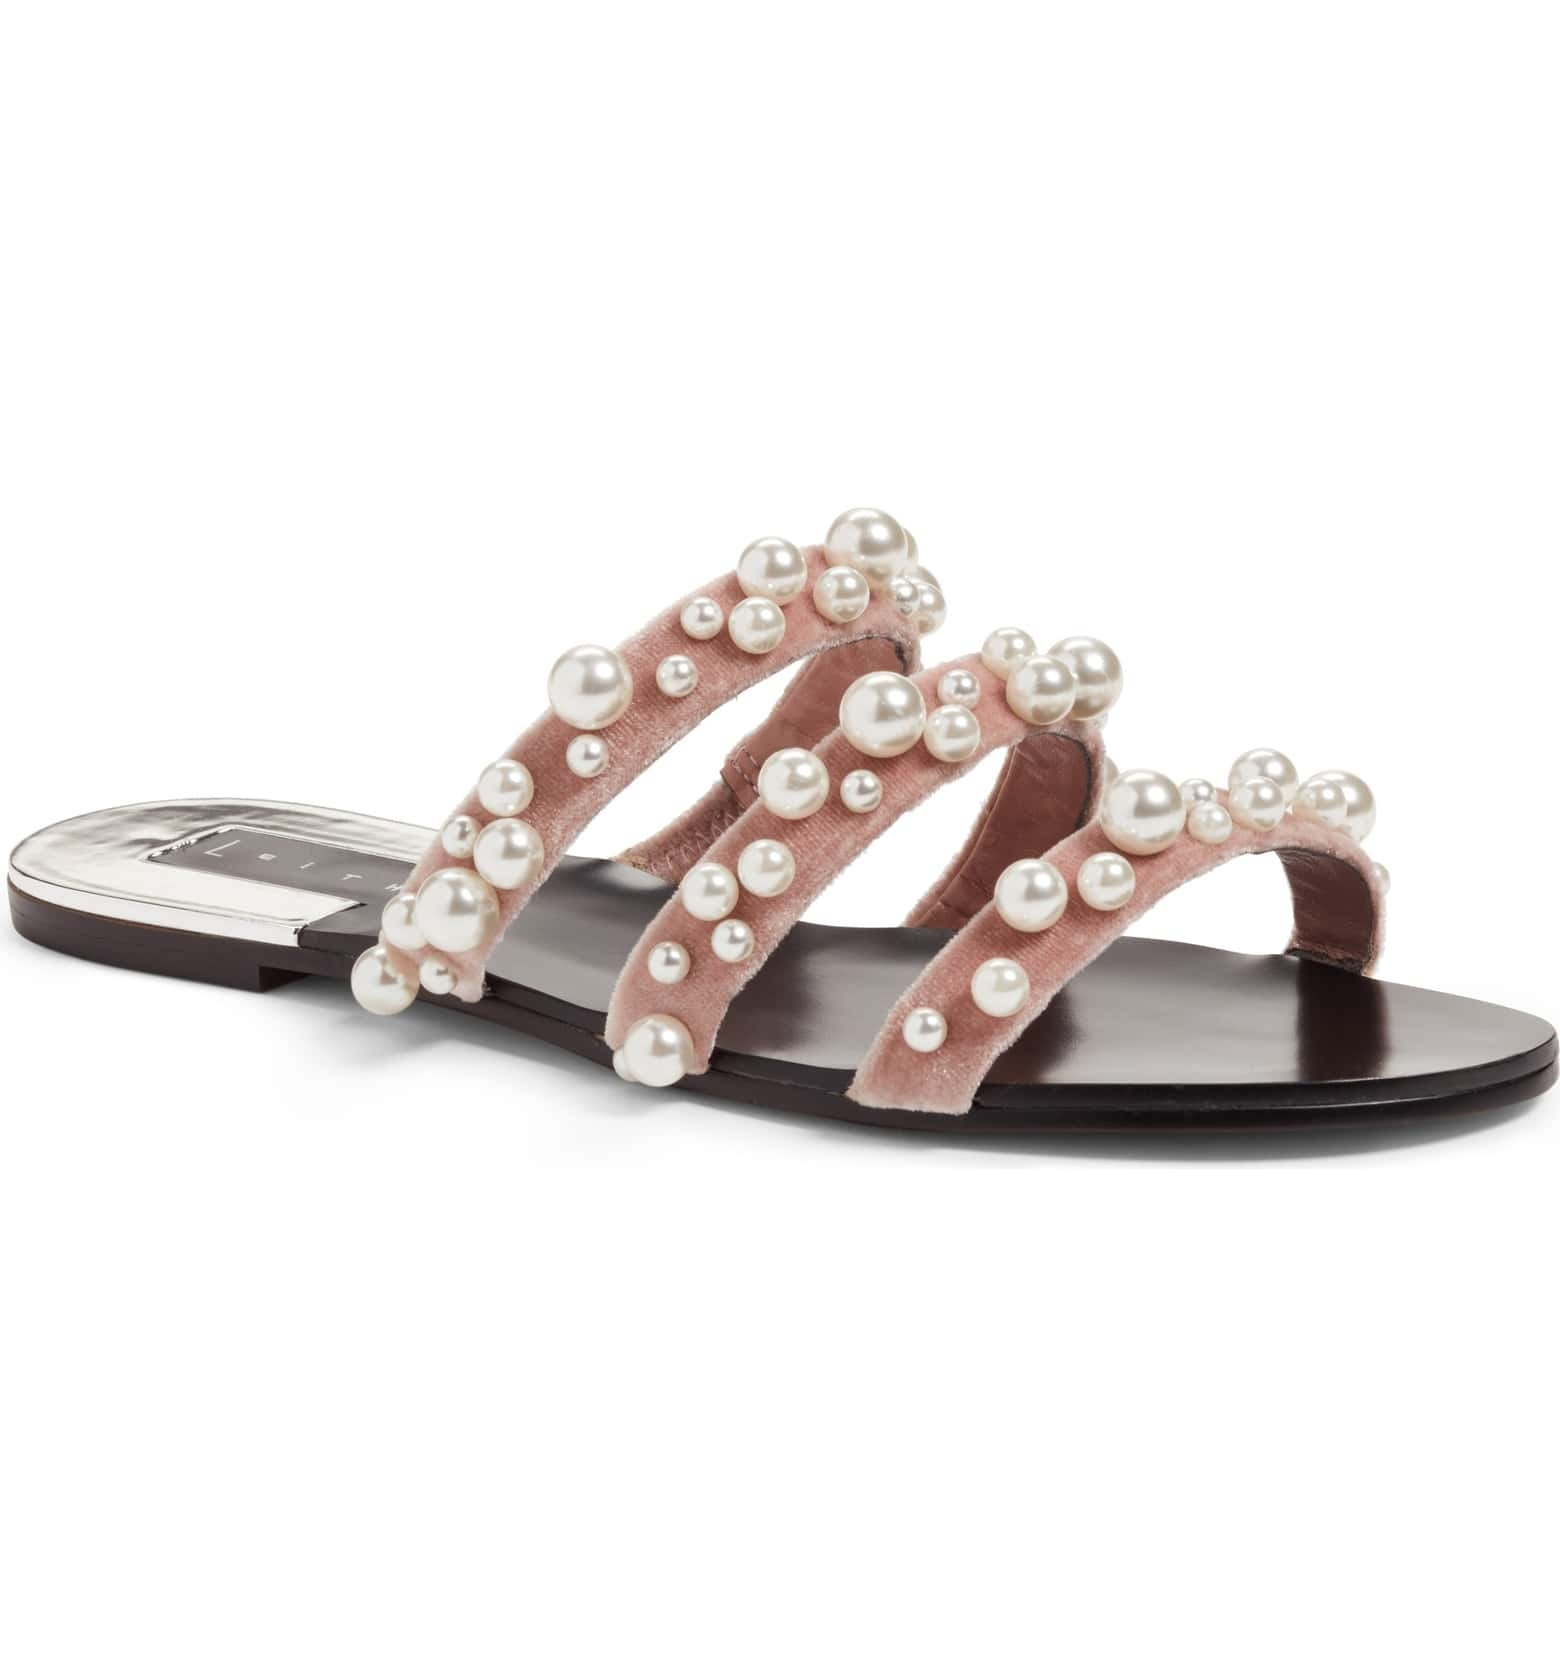 c47a20080f7f33 19 Of The Best Sandals You Can Get At Nordstrom